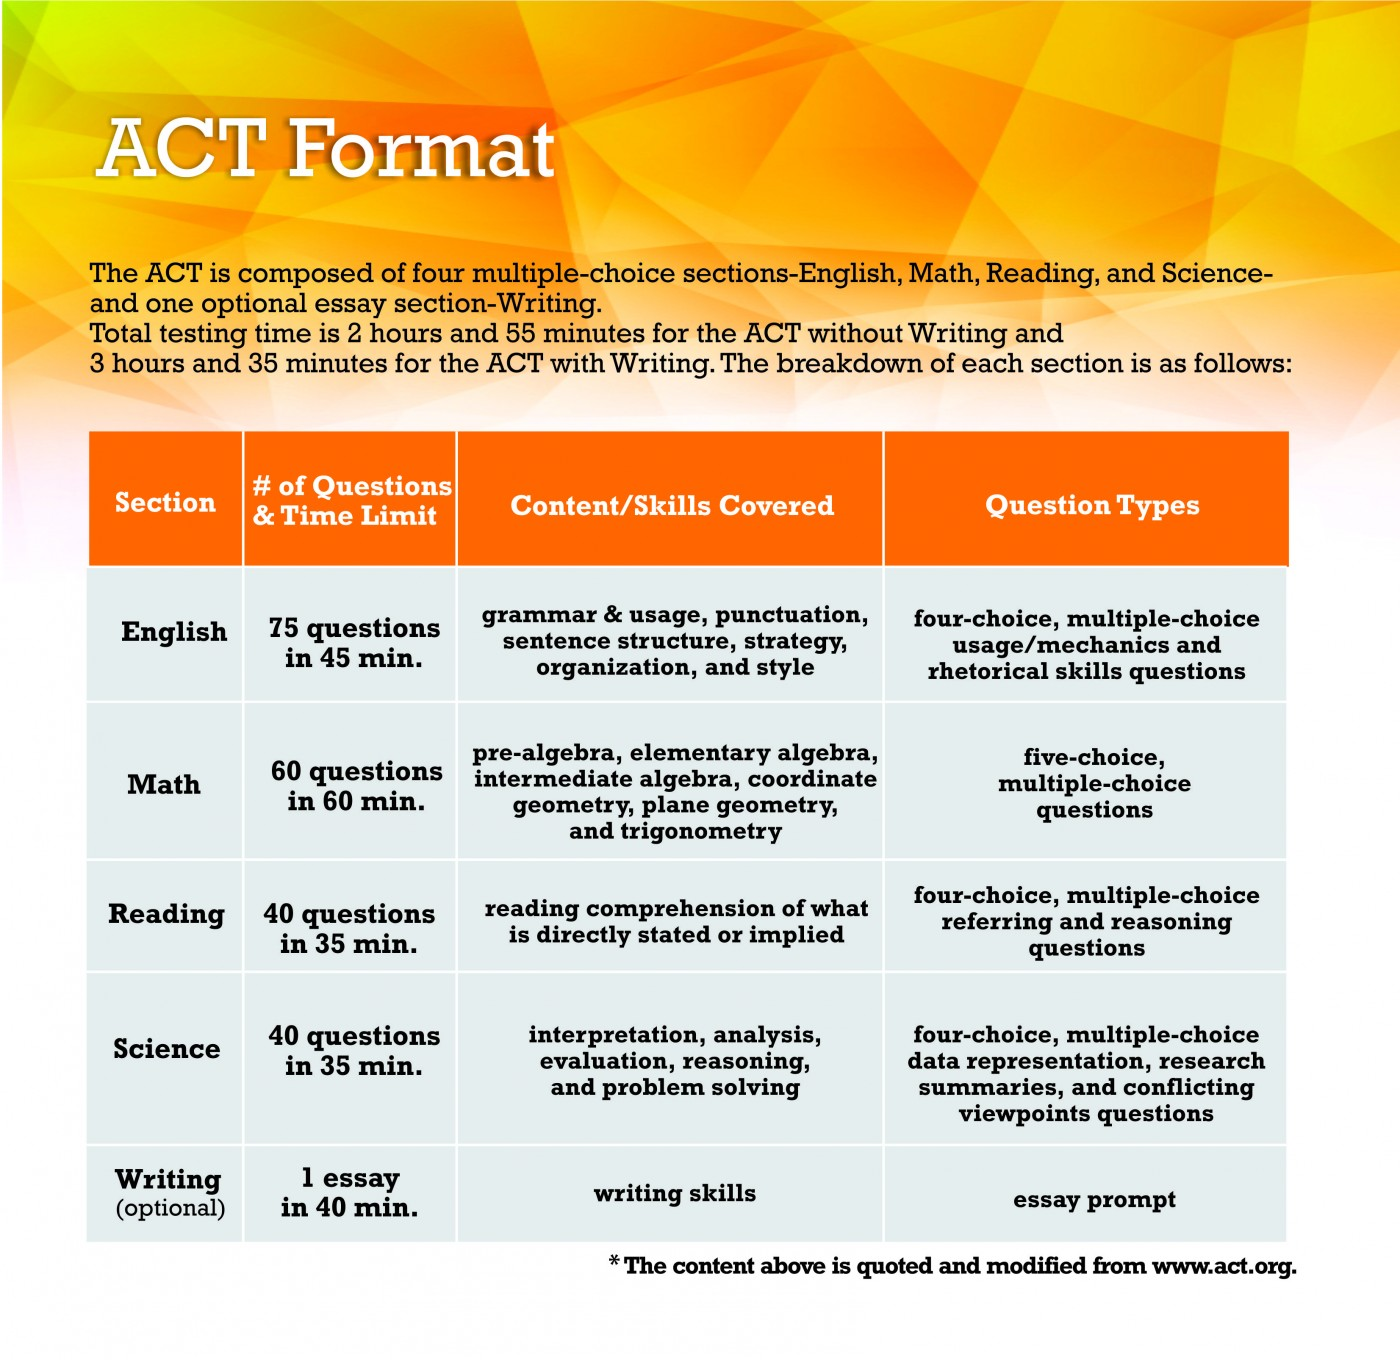 009 Act Format Essay Fearsome New Time Limit Rubric Tips 1400